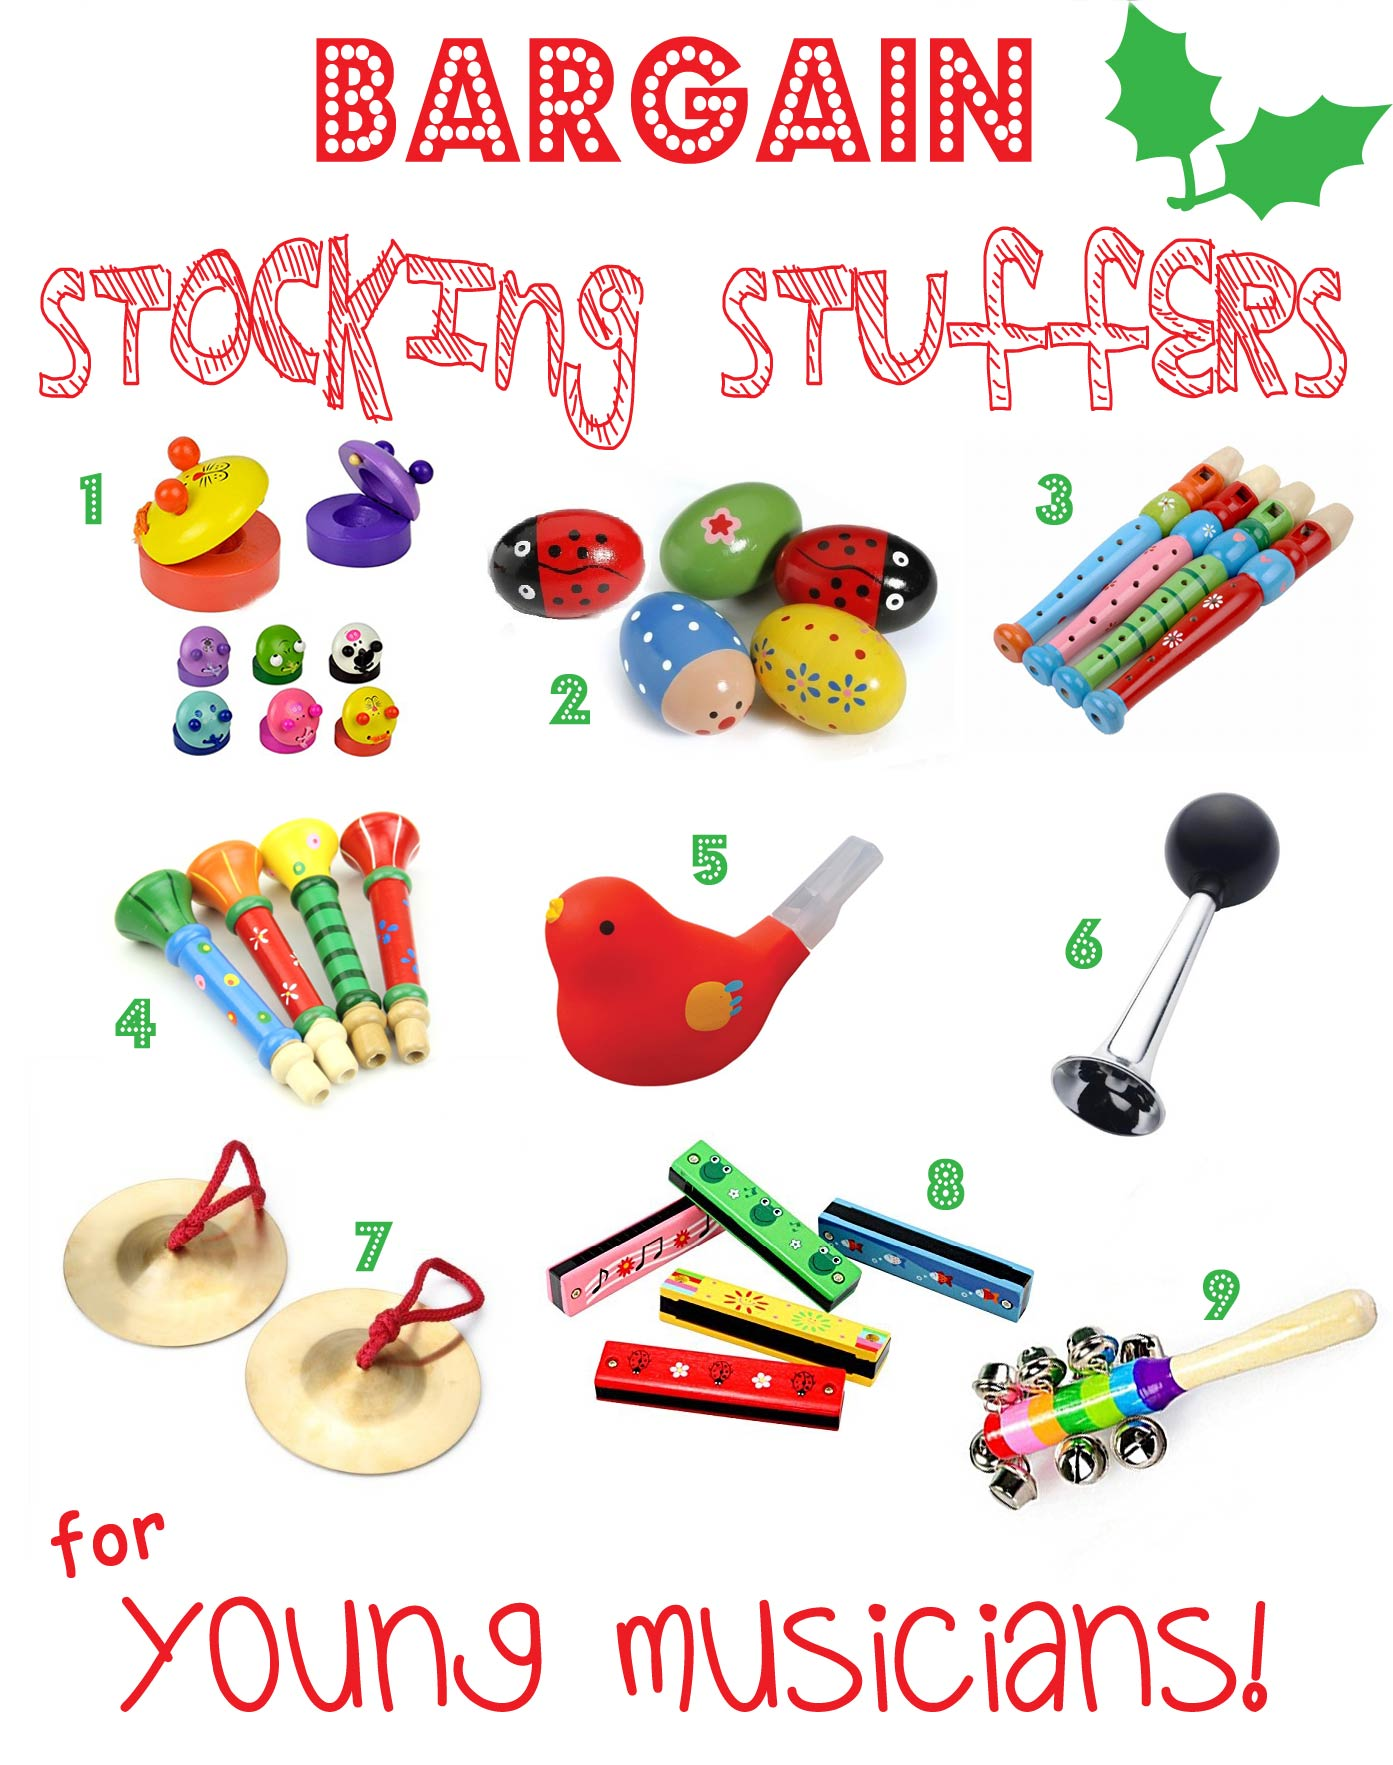 BARGAIN STOCKING STUFFERS FOR KIDS -YOUNG MUSICIANS - Looking for great bargain stocking stuffers for kids that won't be discarded in a week or two? Here's a fantastic stocking stuffers gift guide featuring bargain stocking stuffers, arranged by themes, that can be played with again and again throughout the year.